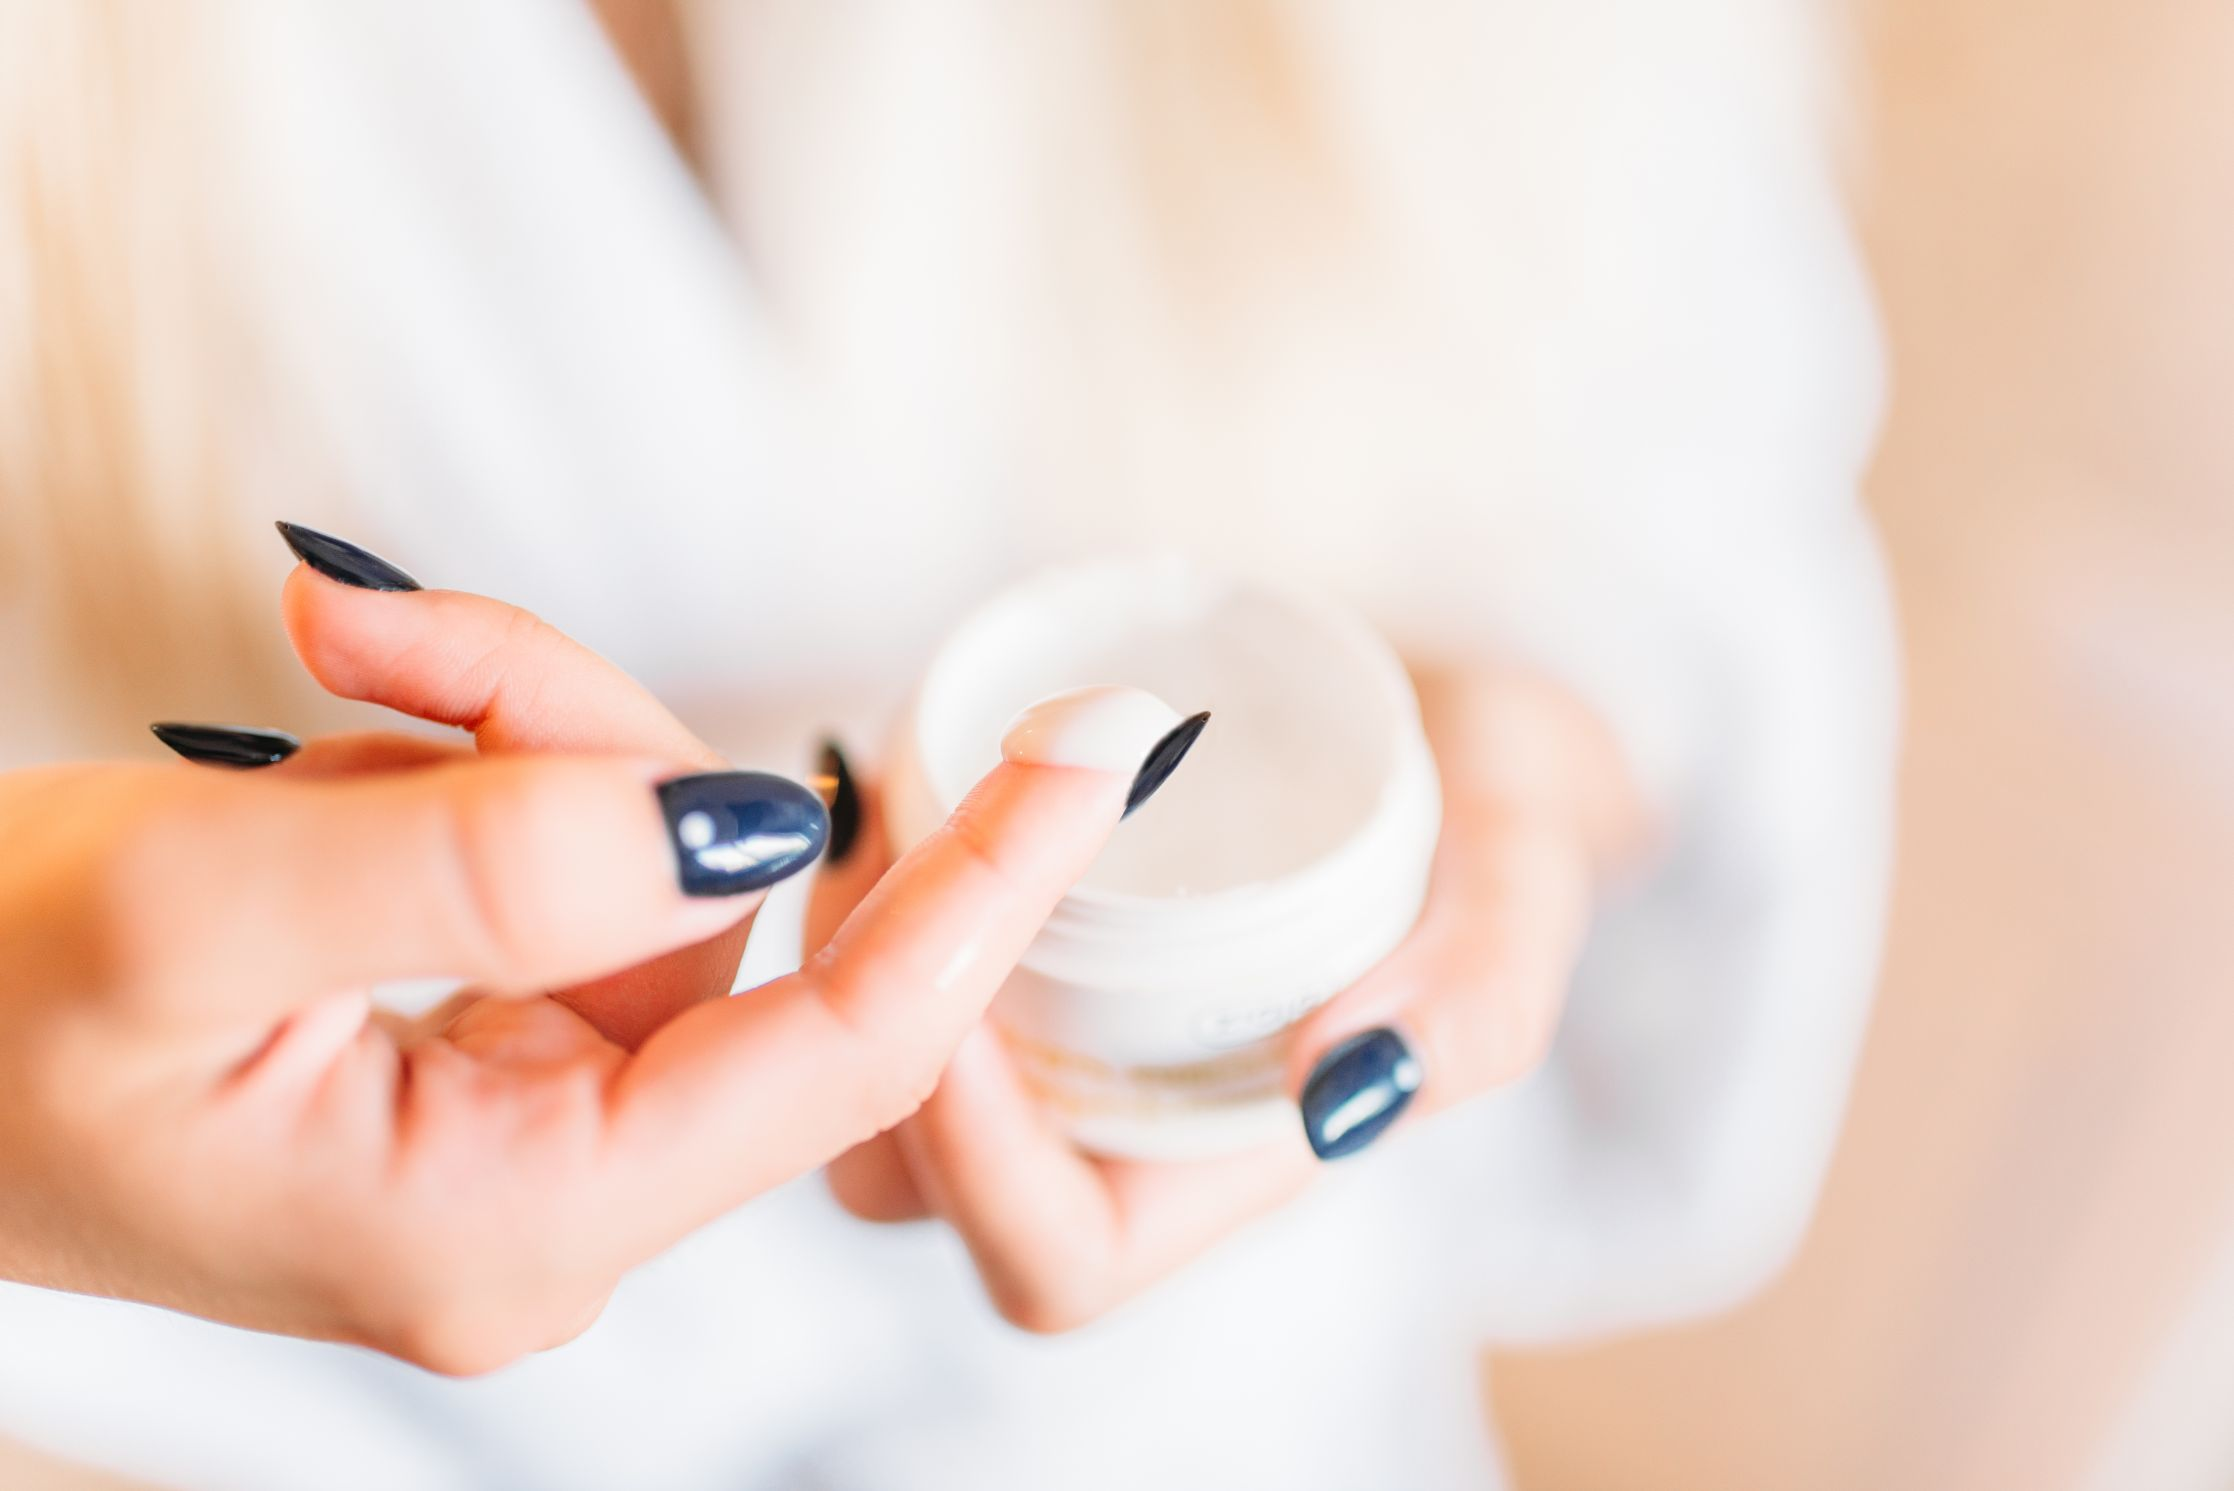 Points to Consider While Buying Skincare Products